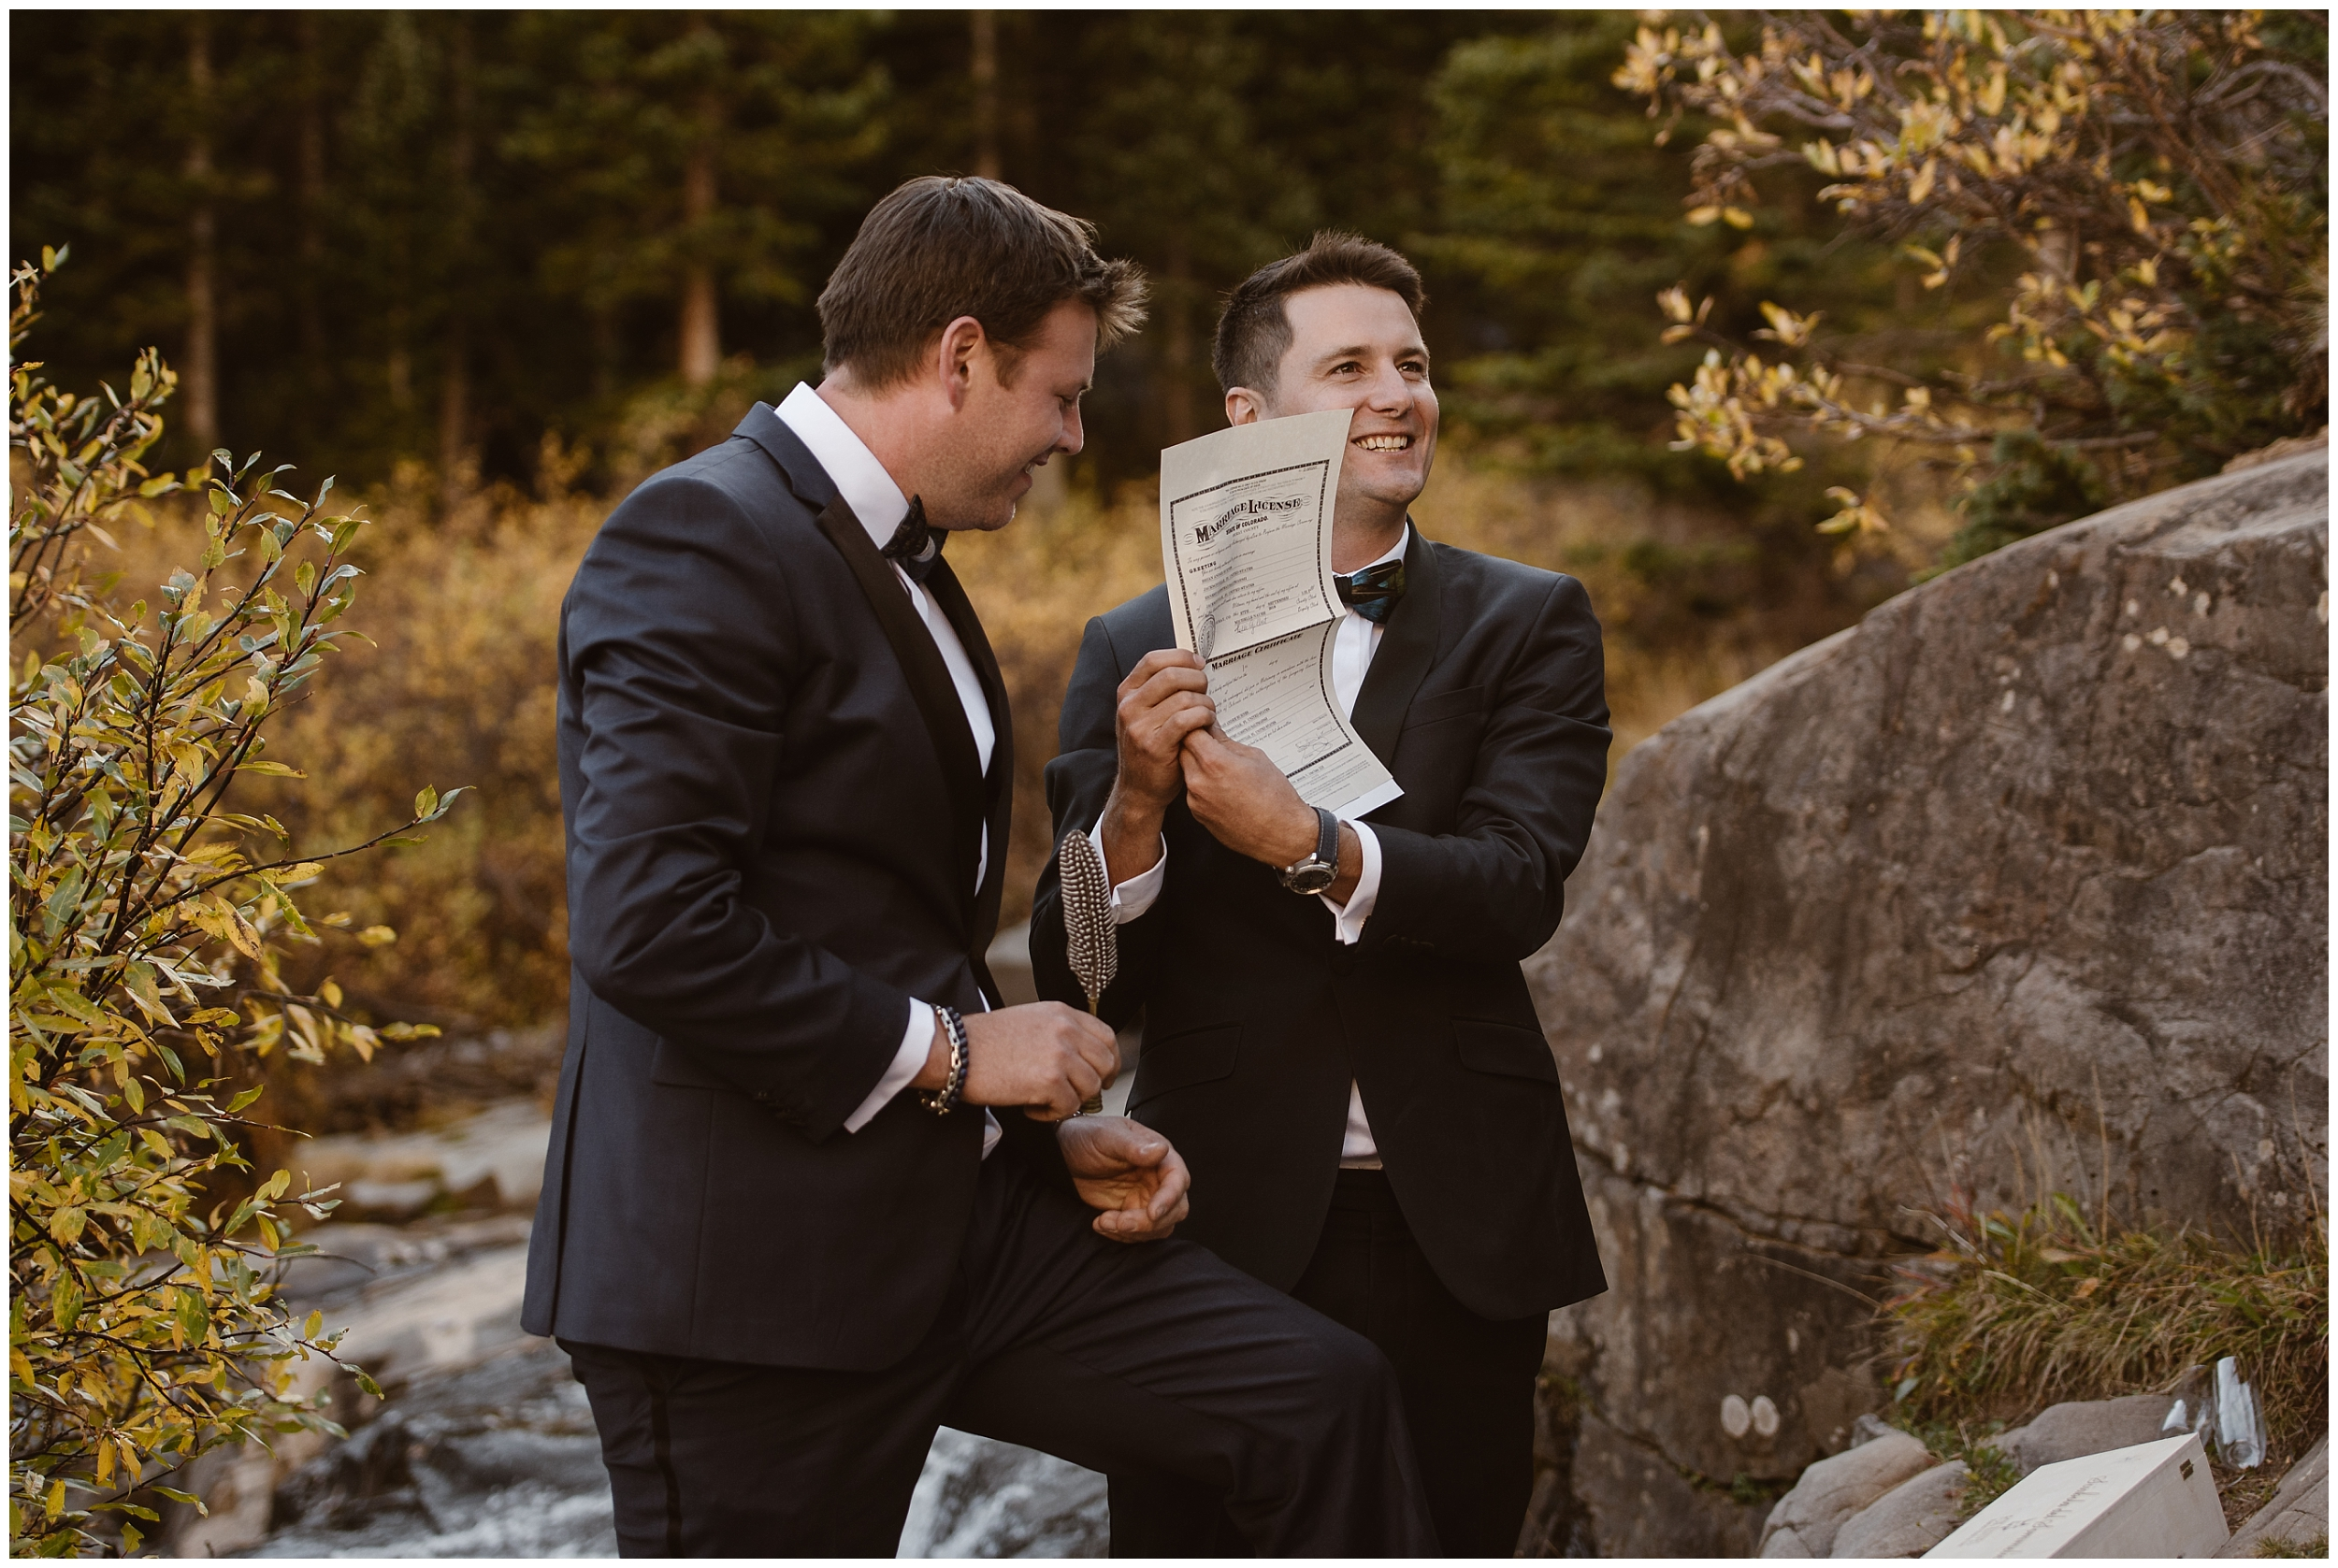 Two grooms hold up their marriage certificate license (which they signed during a wedding ceremony where they inclued their familly). These lgbtq wedding photos were captured by Adventure Instead, an elopement wedding photographer.